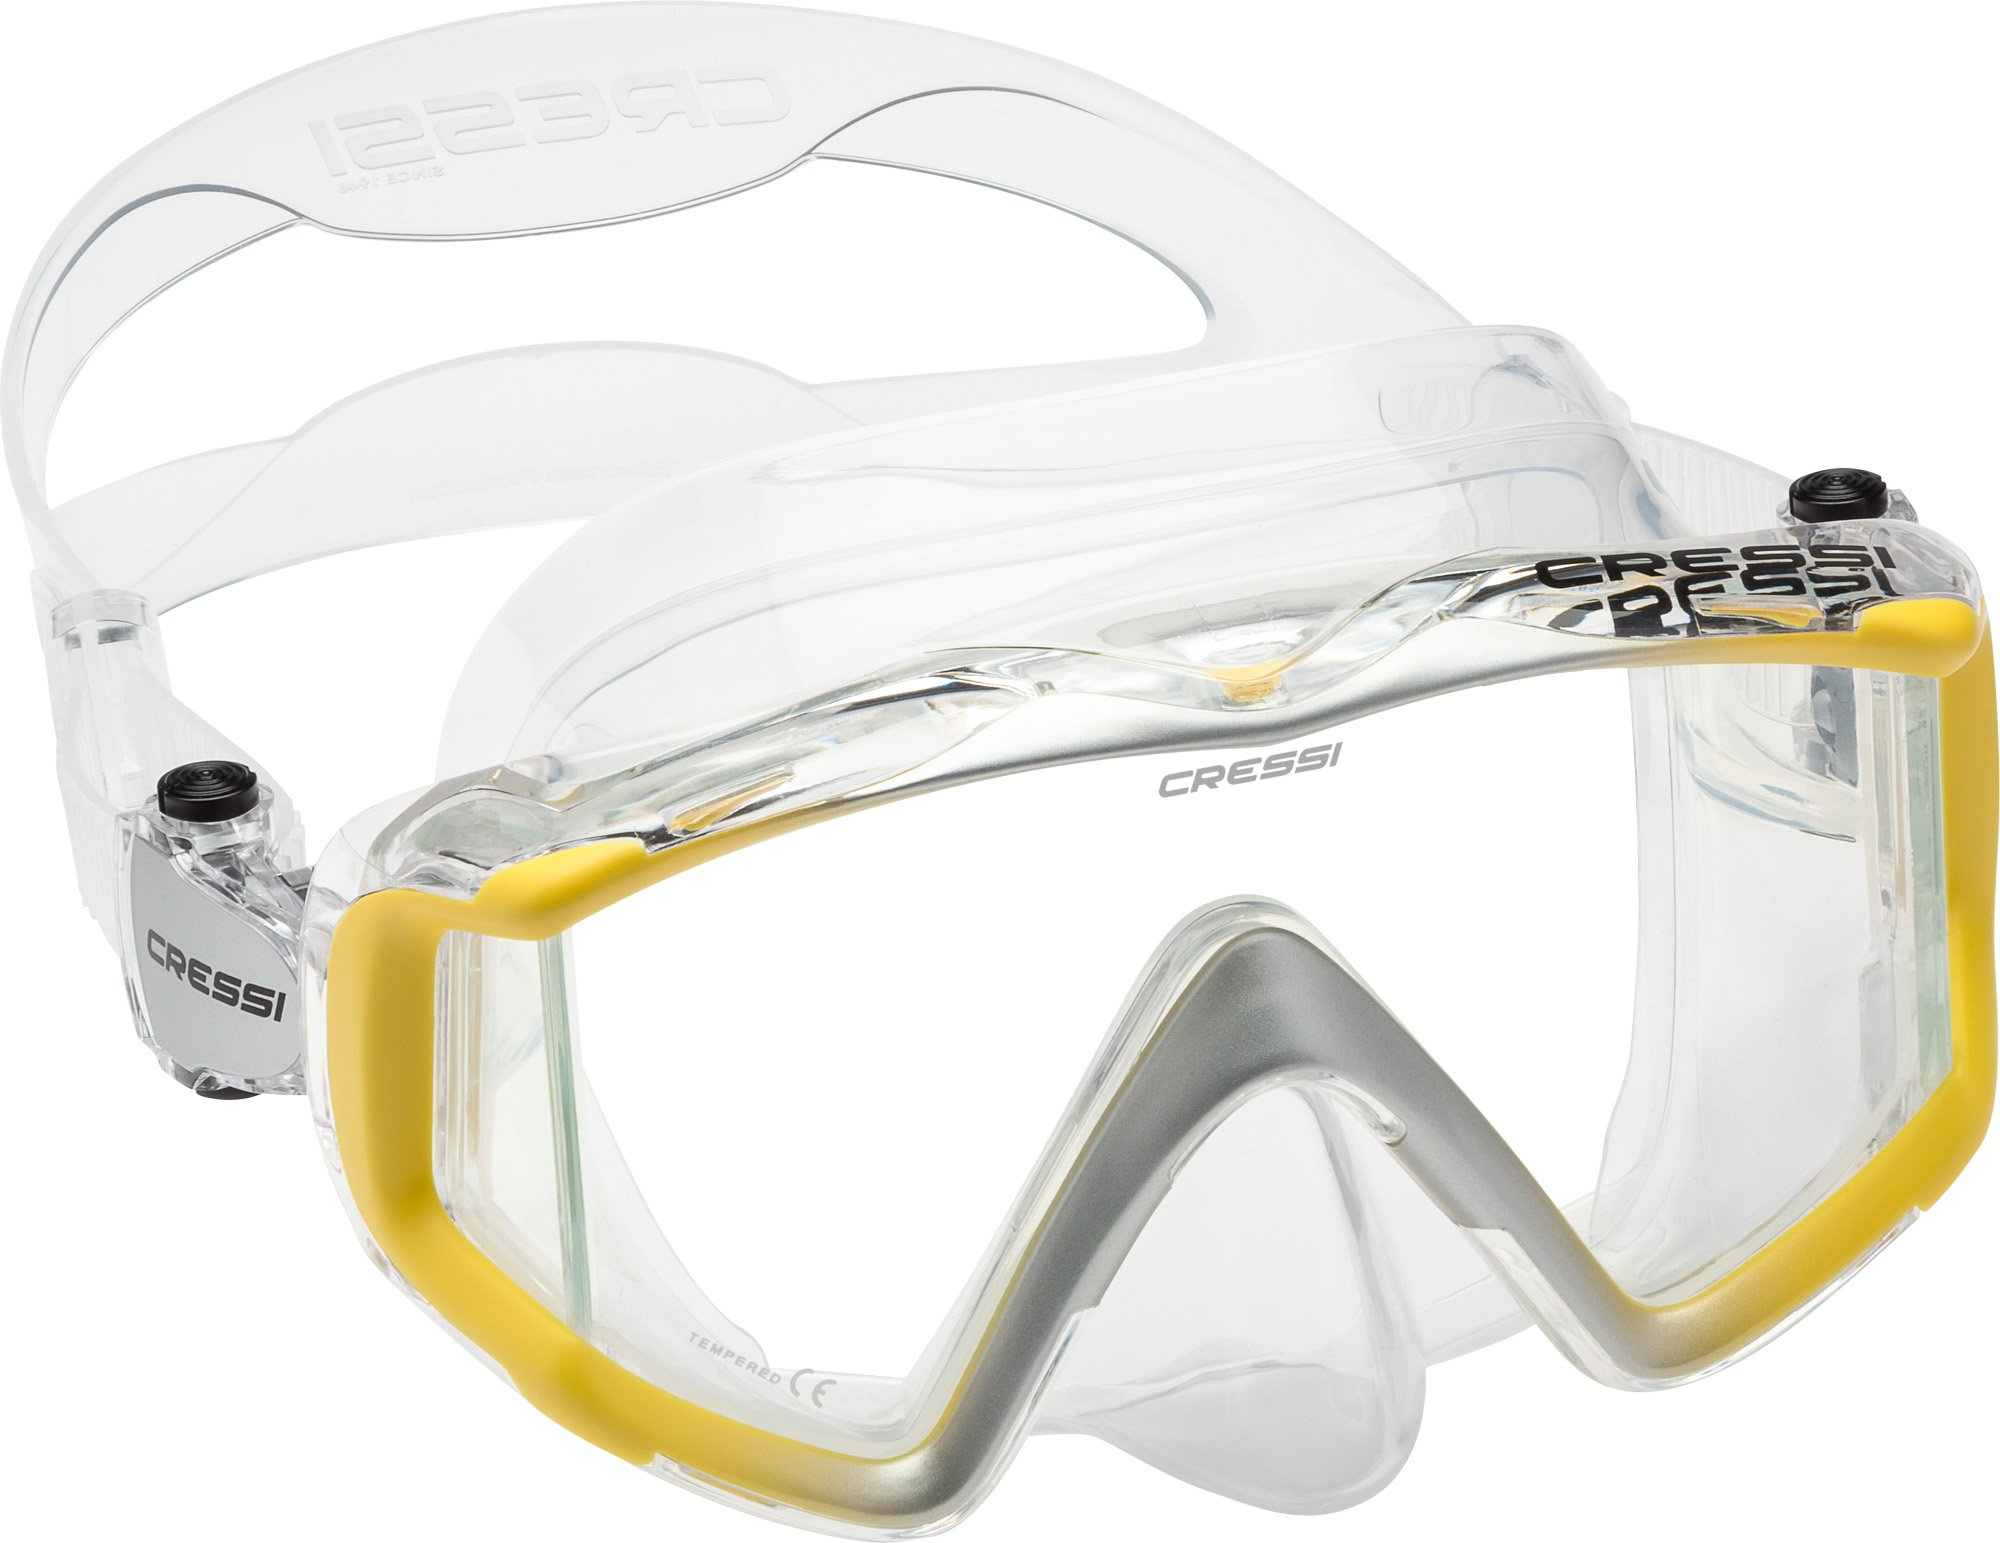 Cressi Liberty Triside Spe Diving Mask, Clear/Yellow/Silver